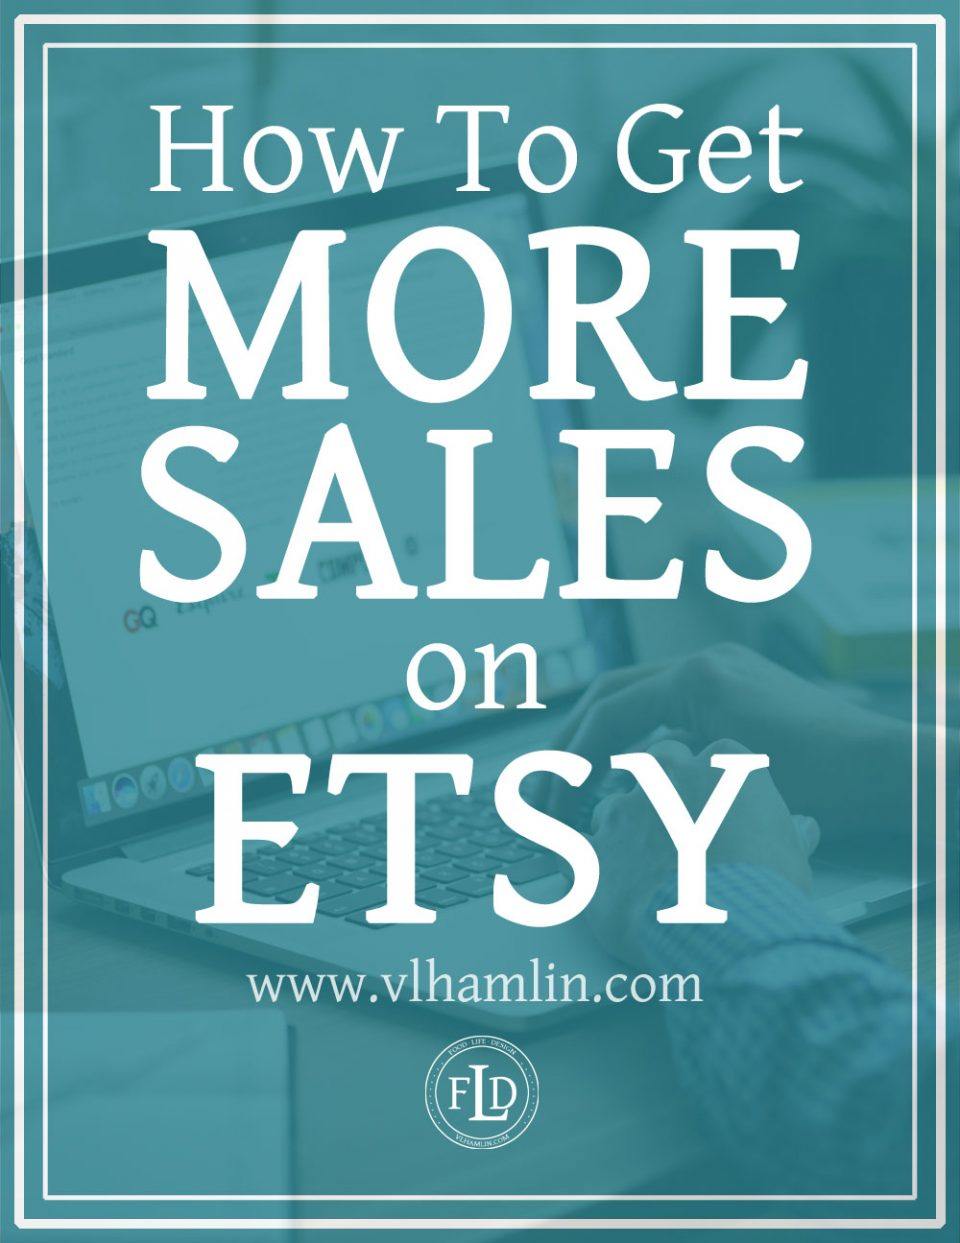 How to Get More Sales on Etsy - LEAD